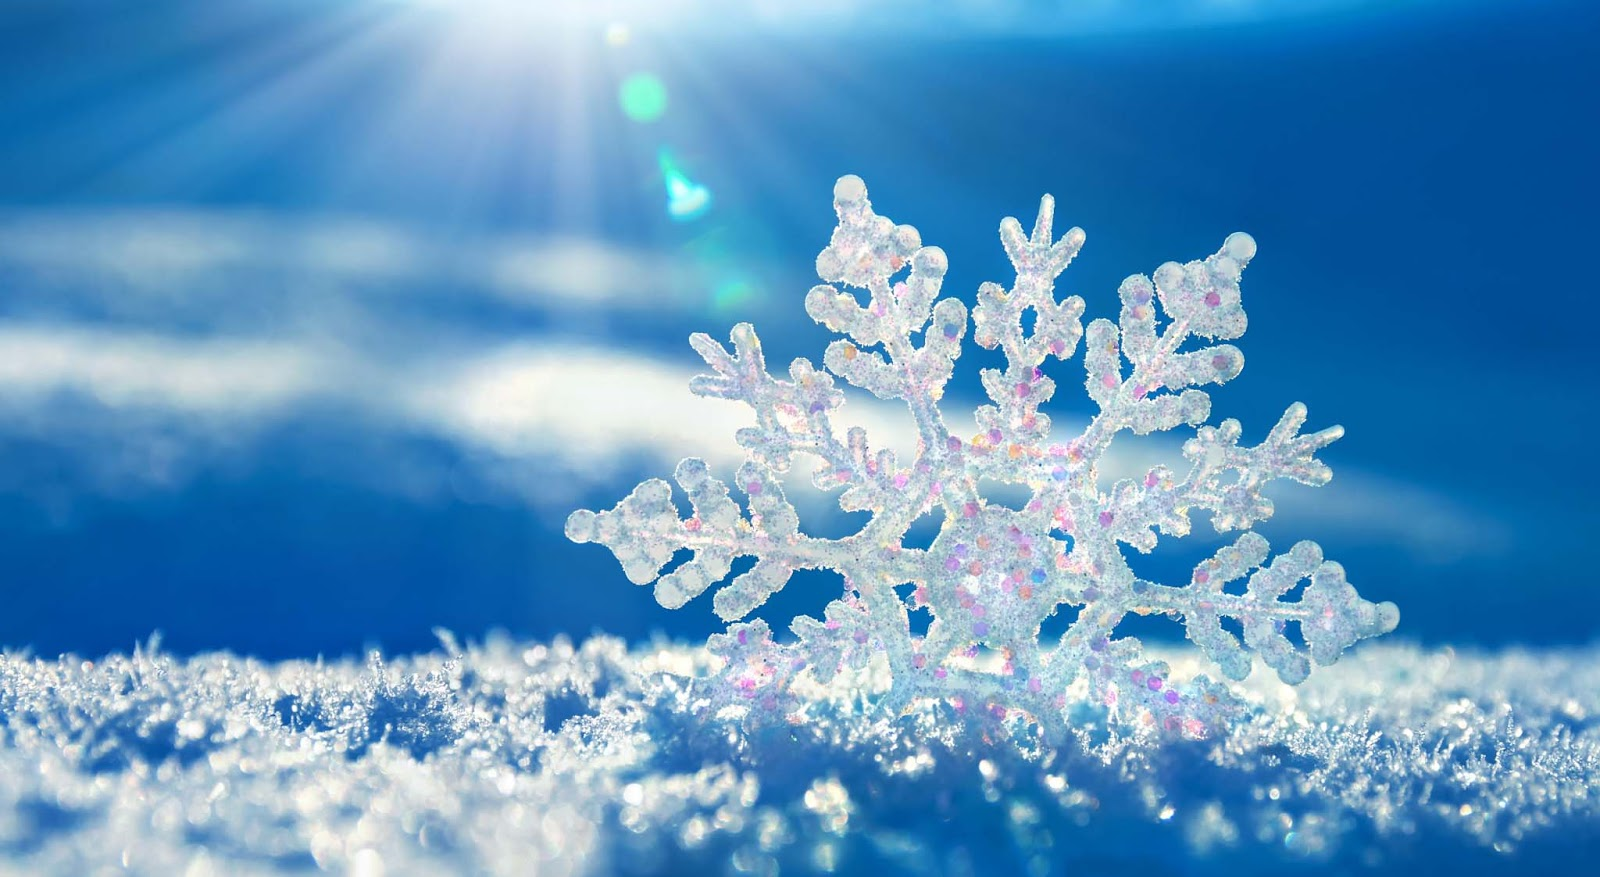 Snowflake,Frozen place.christmas,